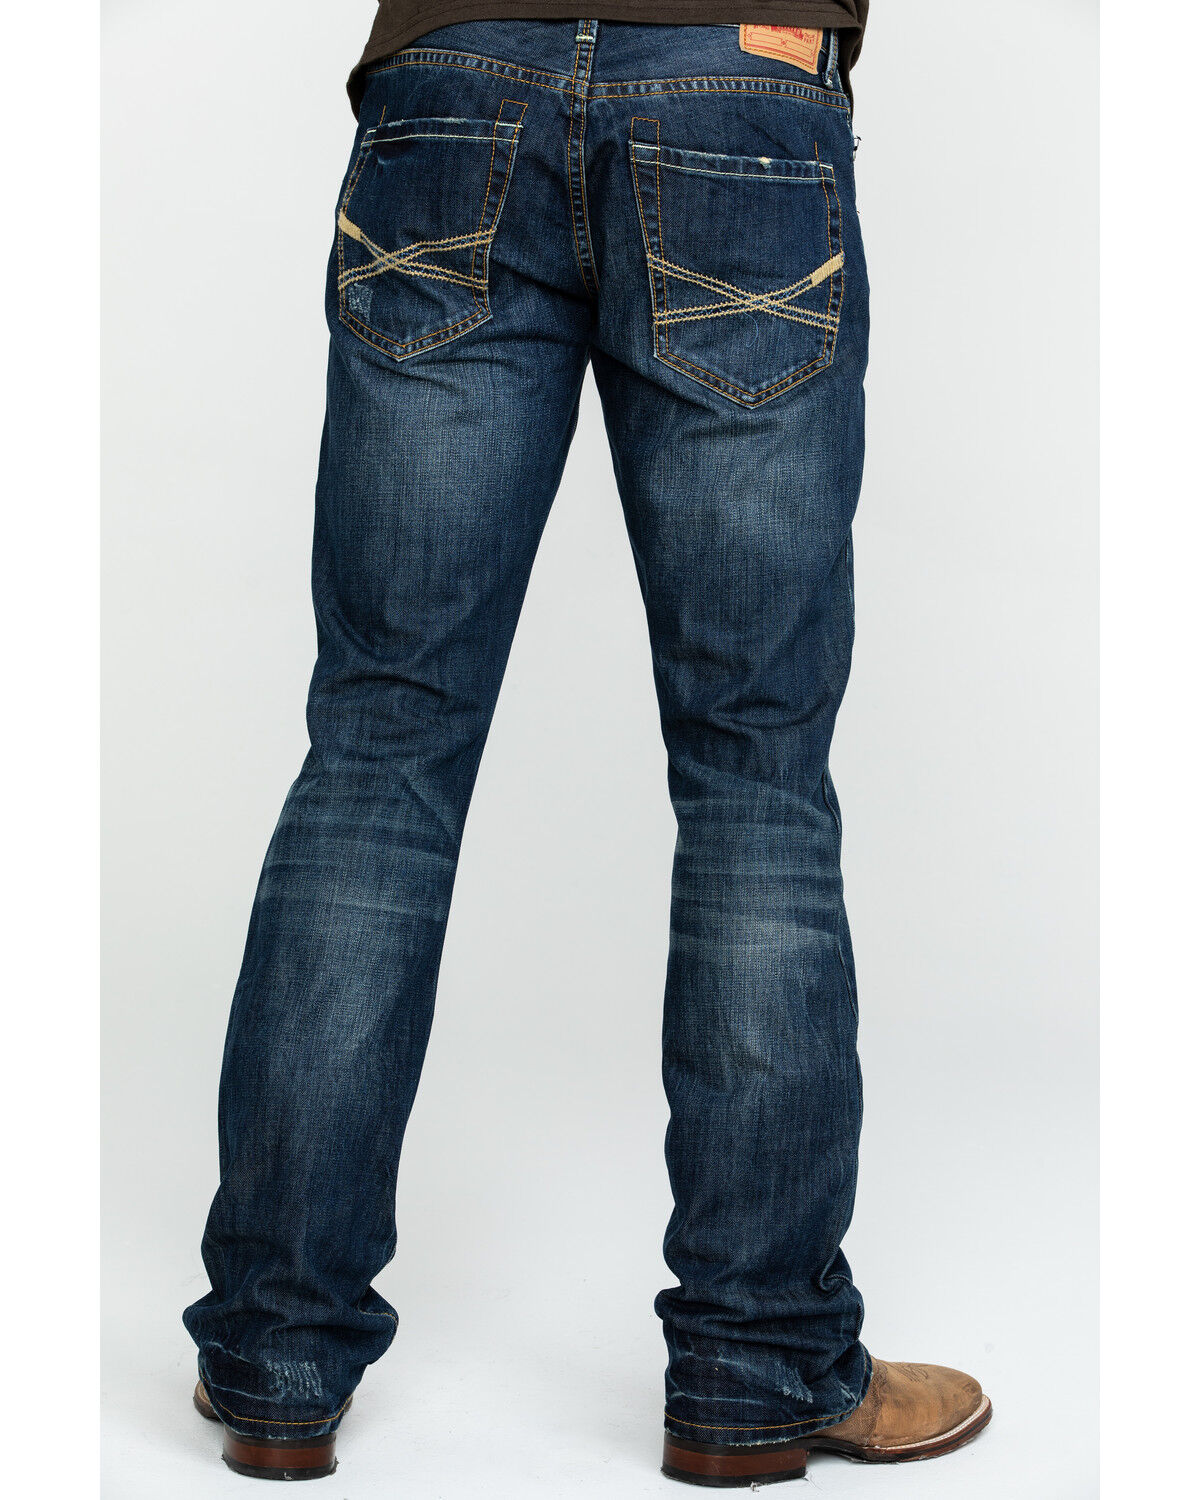 7ddb622ab65 stetson rock fit x stitched jeans sheplers .